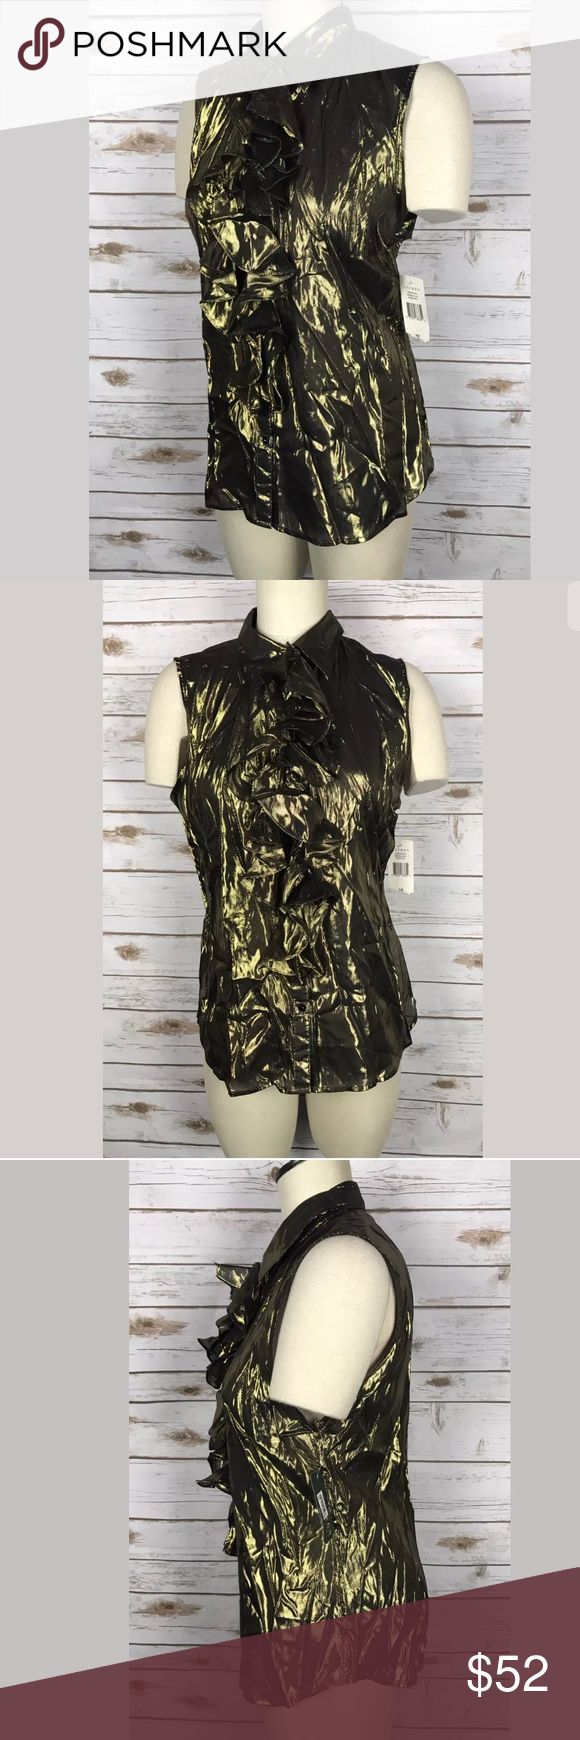 Lauren Ralph Lauren Rare Silk Metallic Blouse Sz12 Very good conditions as shown in the pictures.  No stains or damage. Carefully inspect all pictures as they are a major part of the description and condition.                                I try my best to describe my items in detail. Please ask any questions prior to purchase. Questions are usually answered the same day for your convenience.   Items are stored in a pet and smoke free environment.   Thanks for shopping in my store…